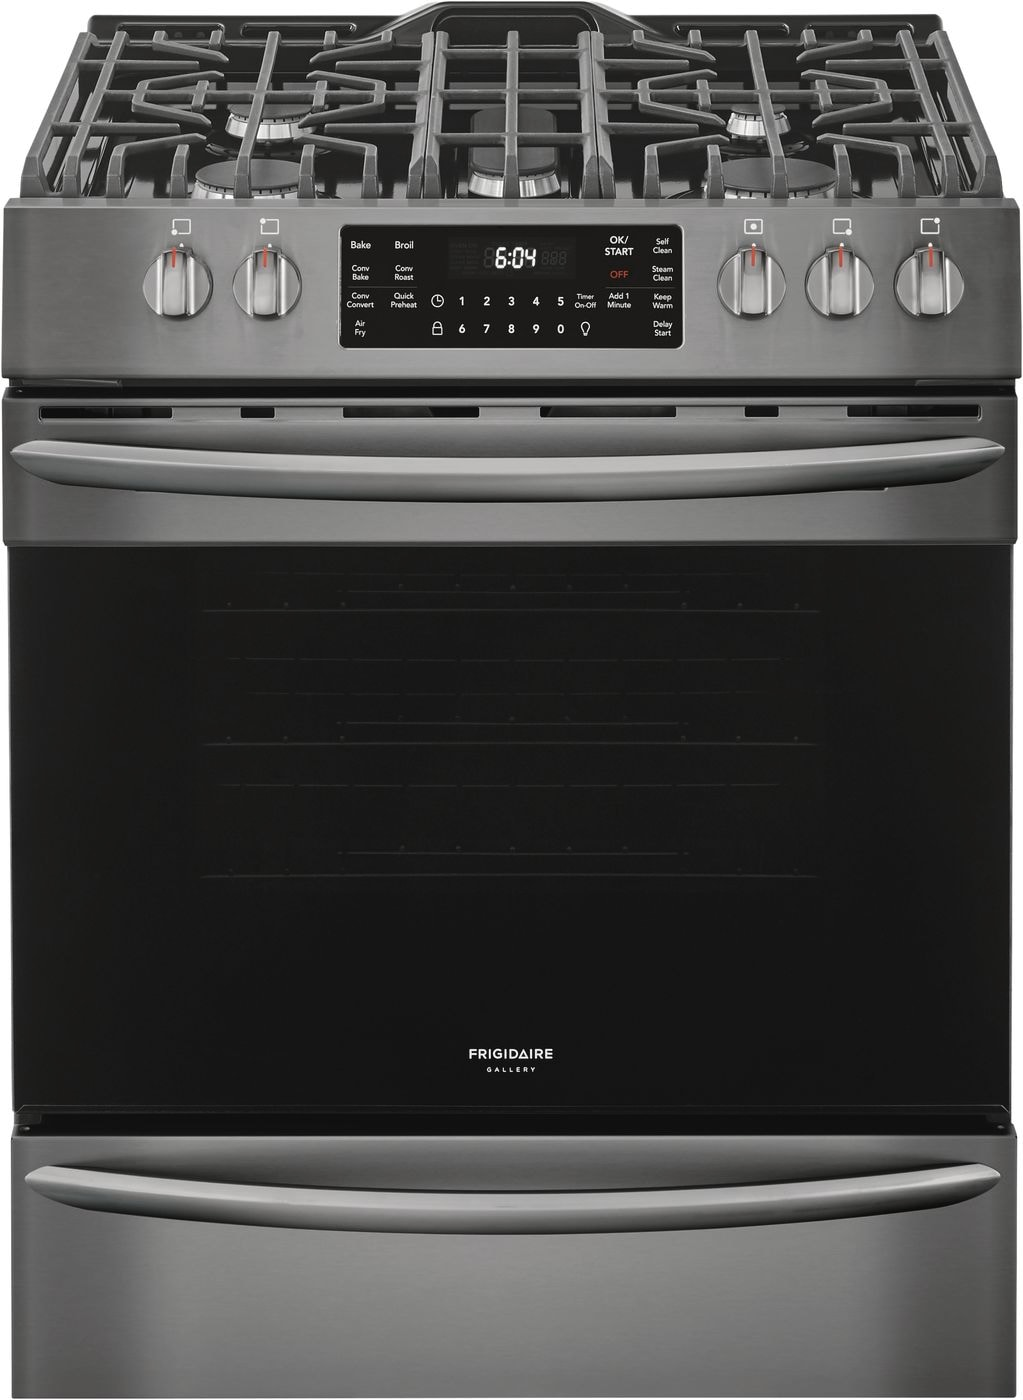 "Frigidaire Gallery 30"" Front Control Gas Range with Air Fry"